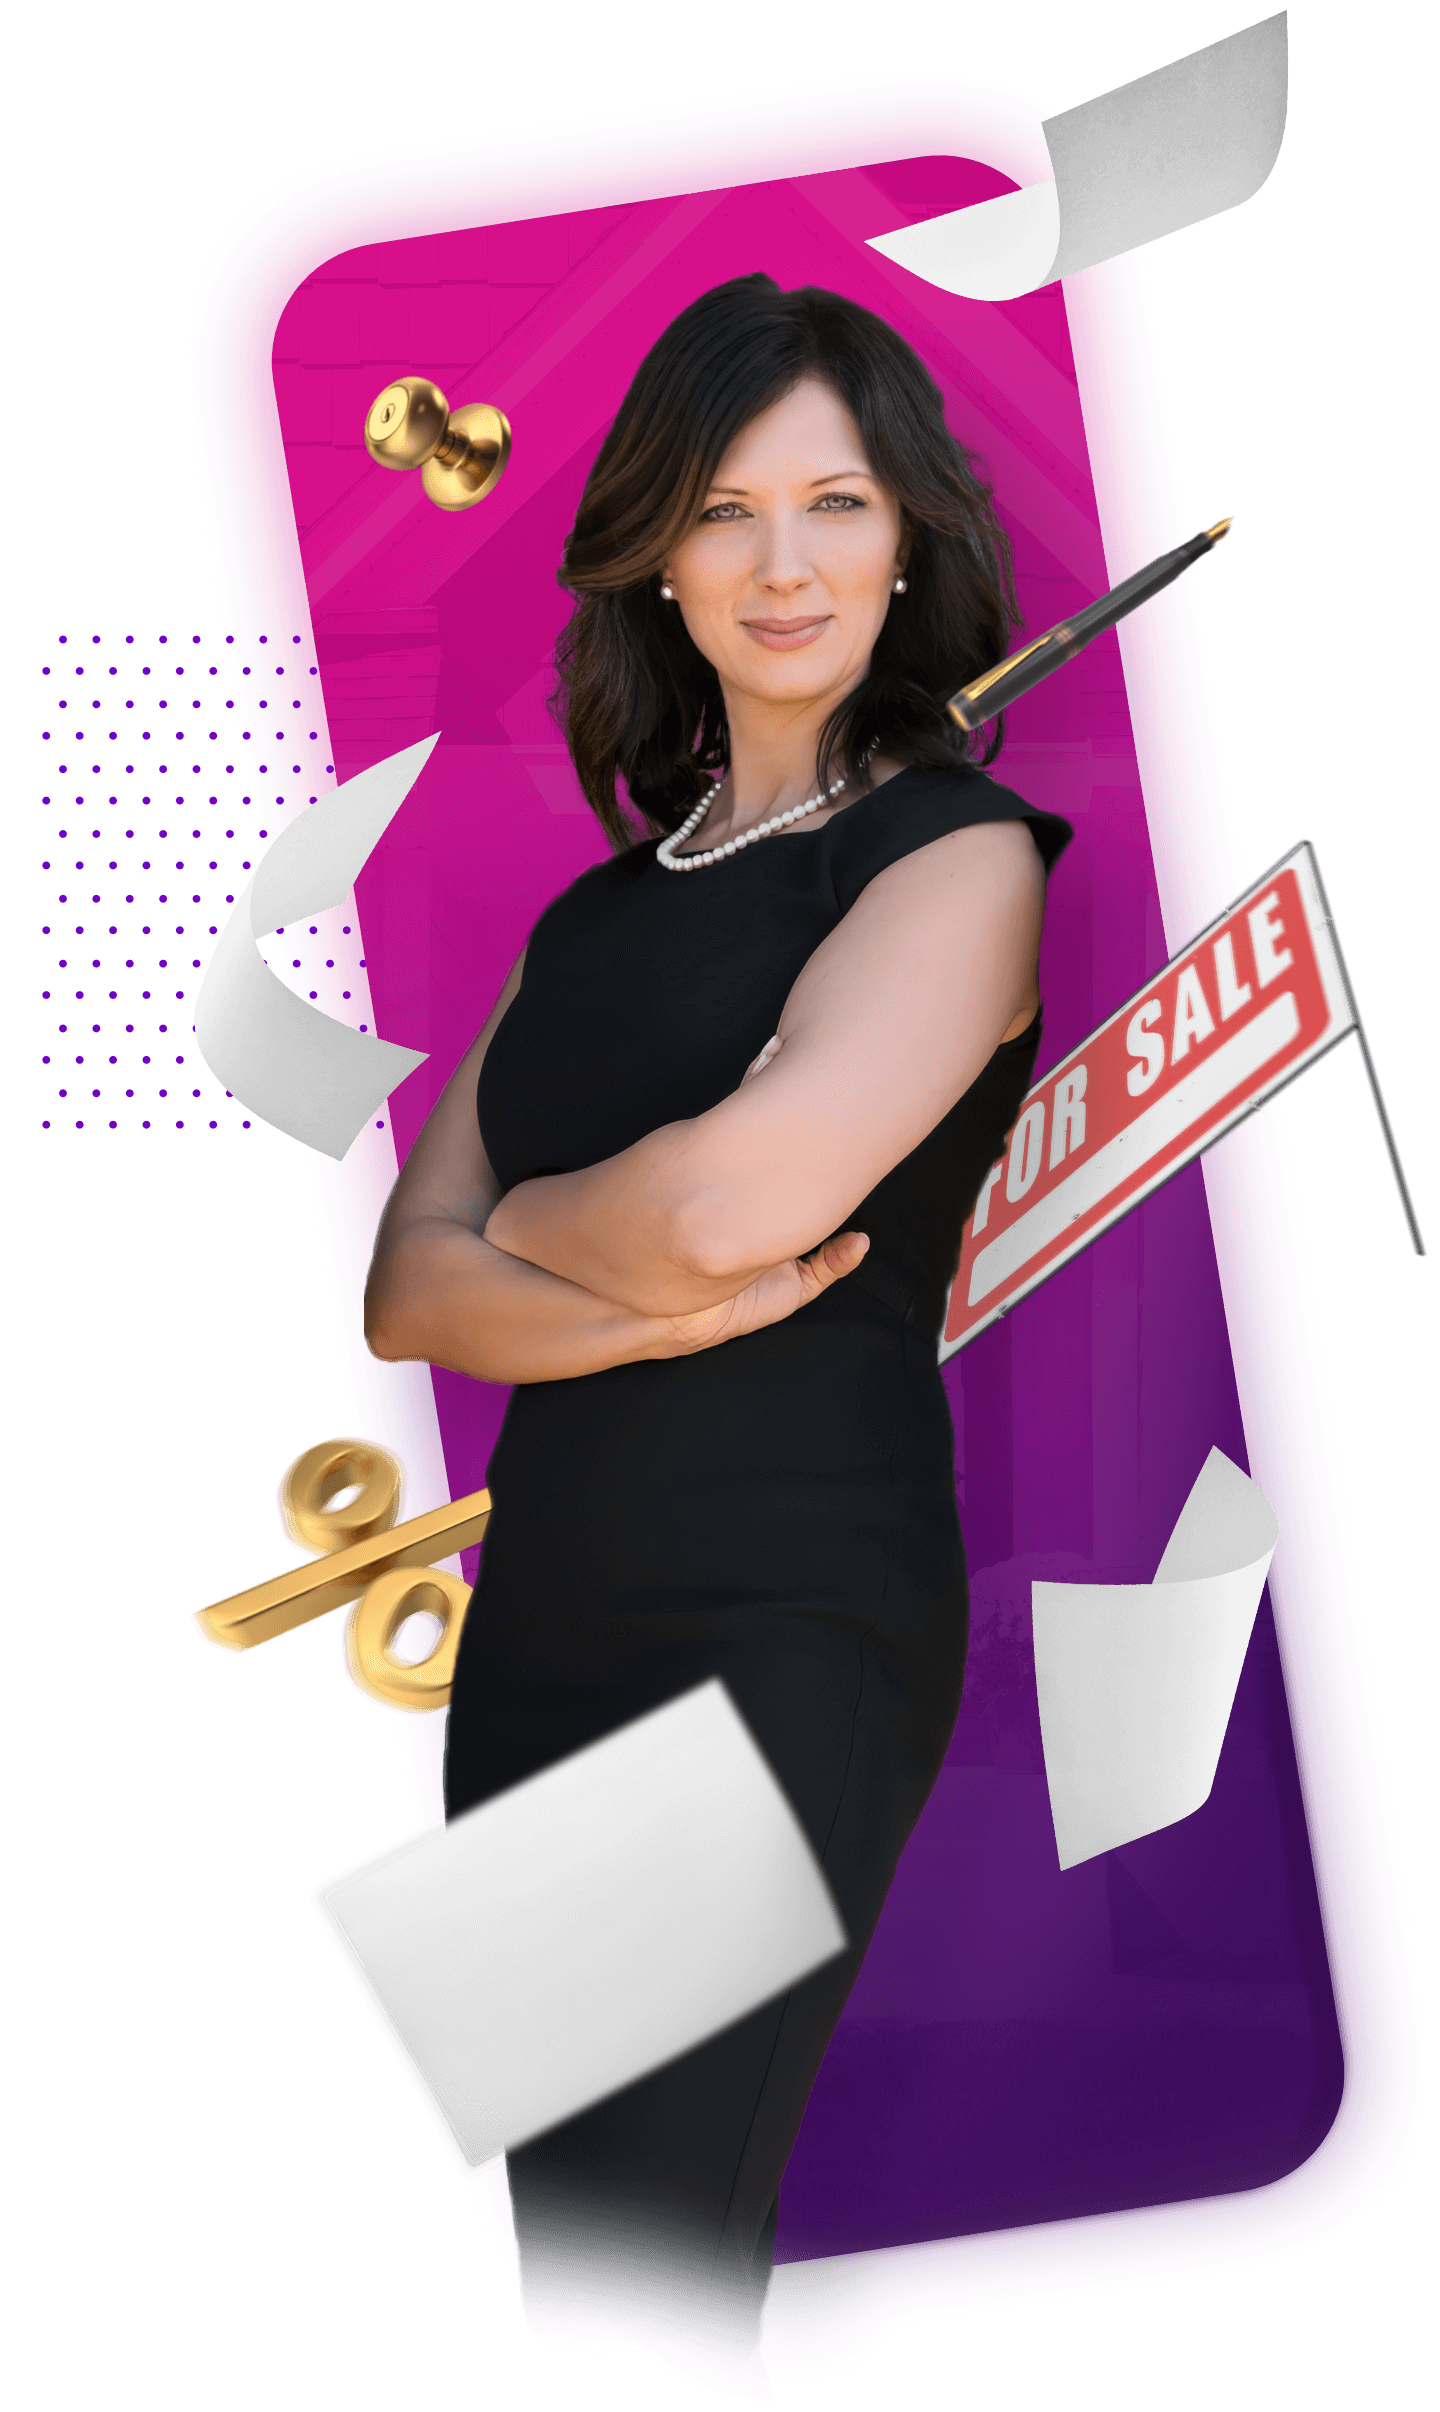 Stephanie with For Sale Sign